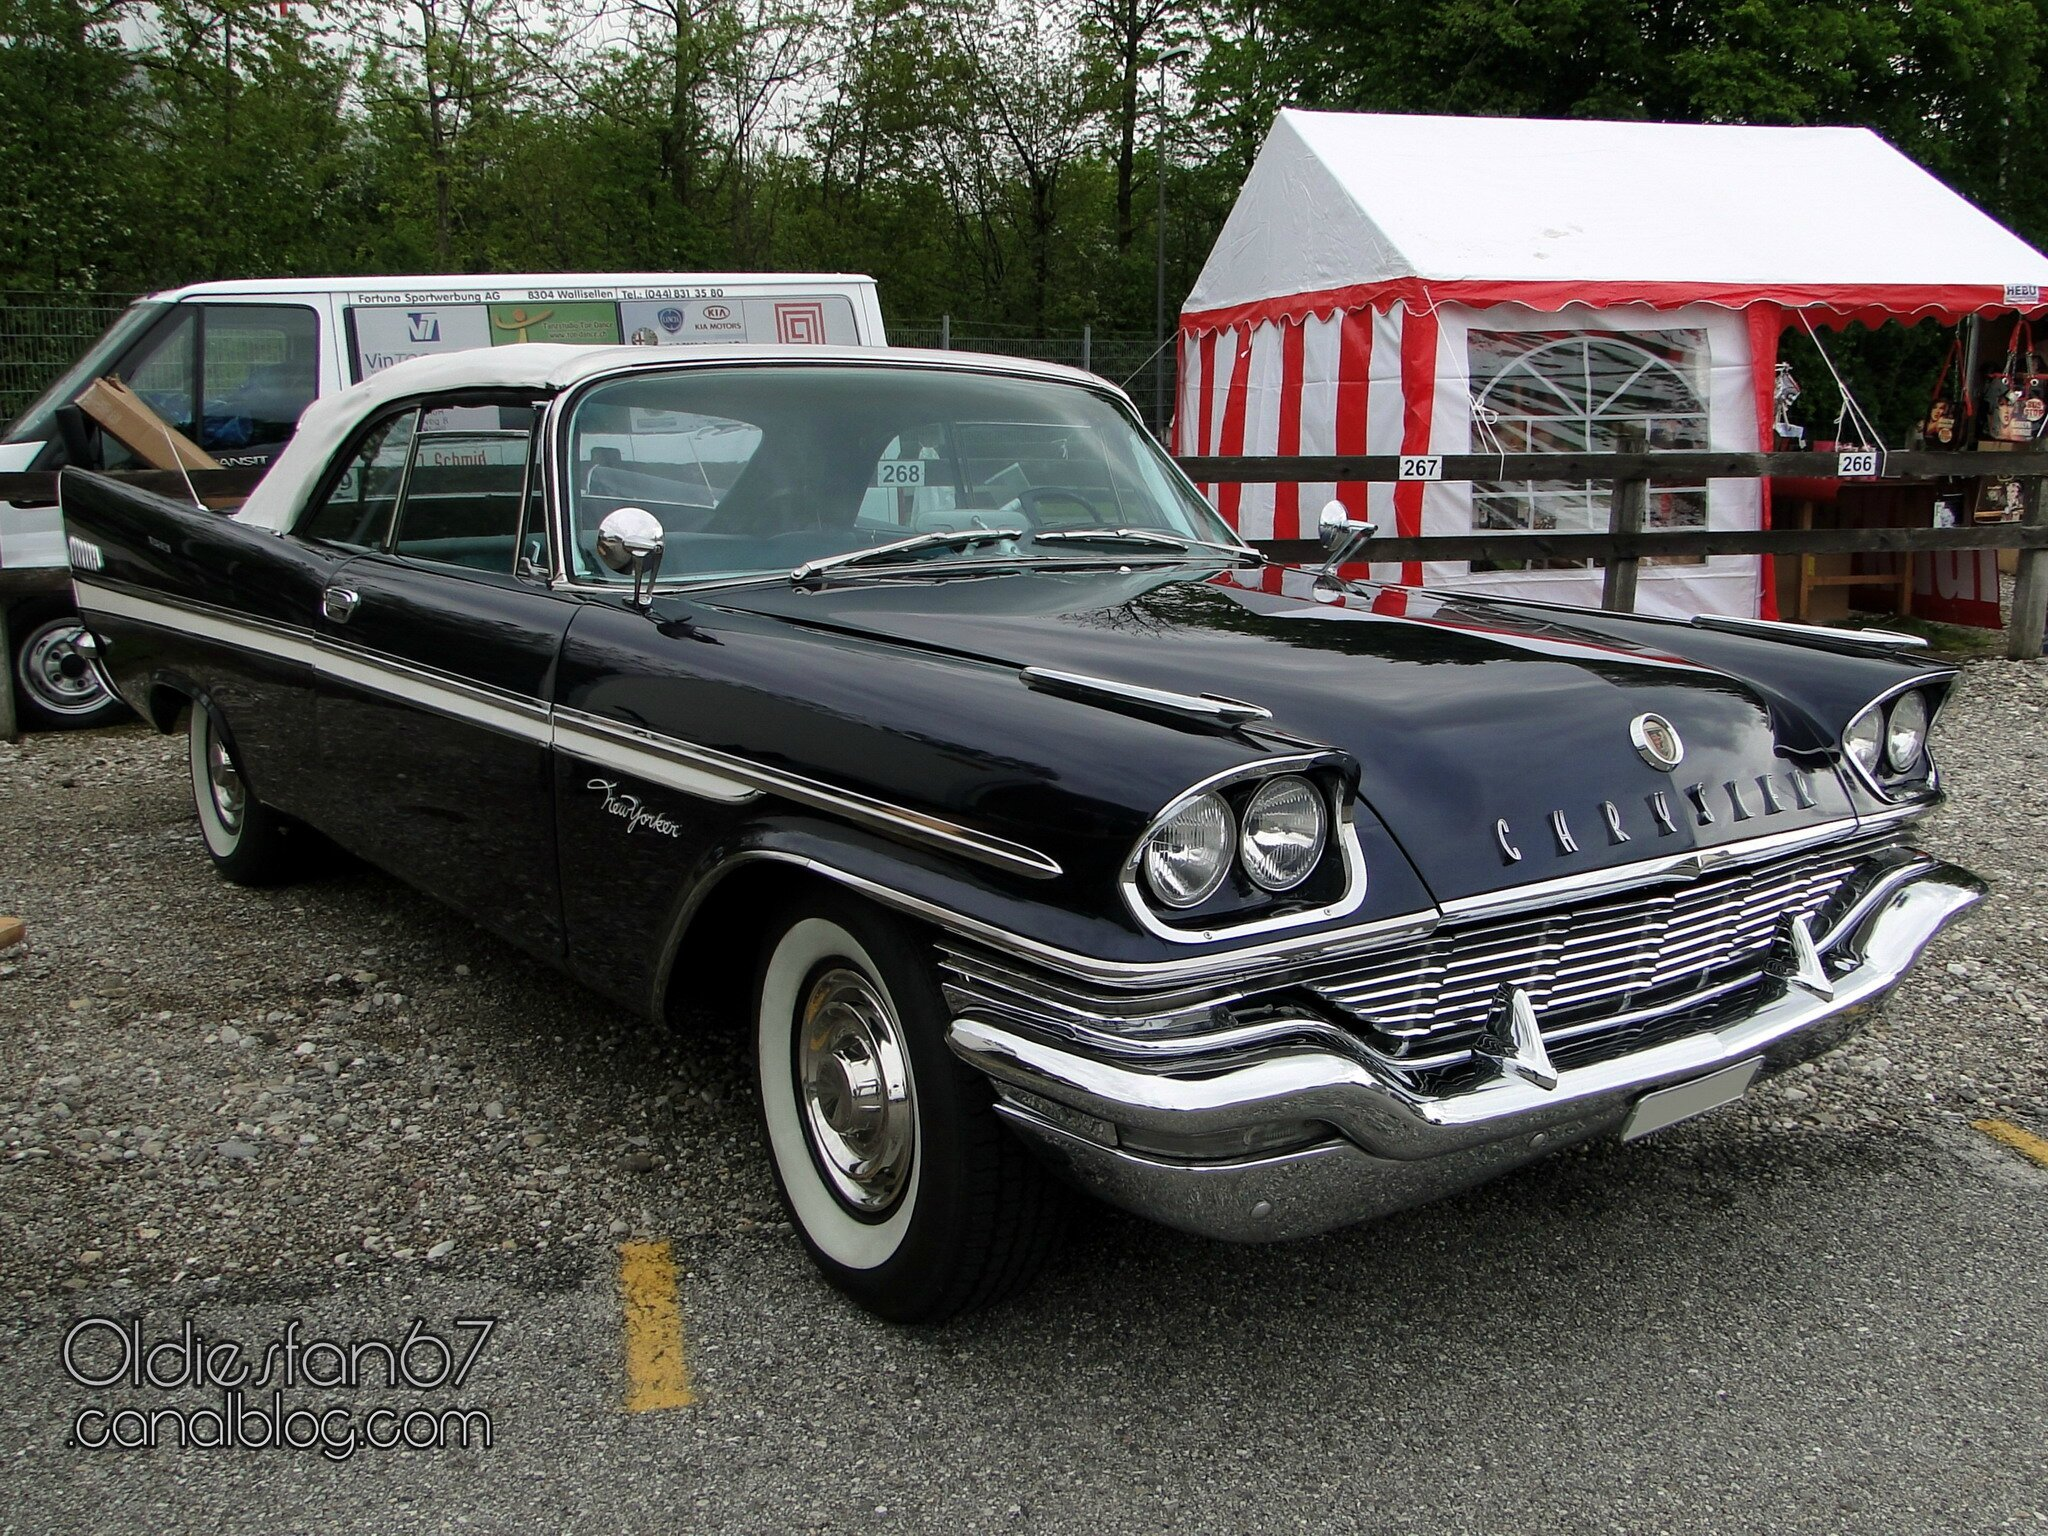 chrysler new yorker convertible 1957 oldiesfan67 mon blog auto. Black Bedroom Furniture Sets. Home Design Ideas